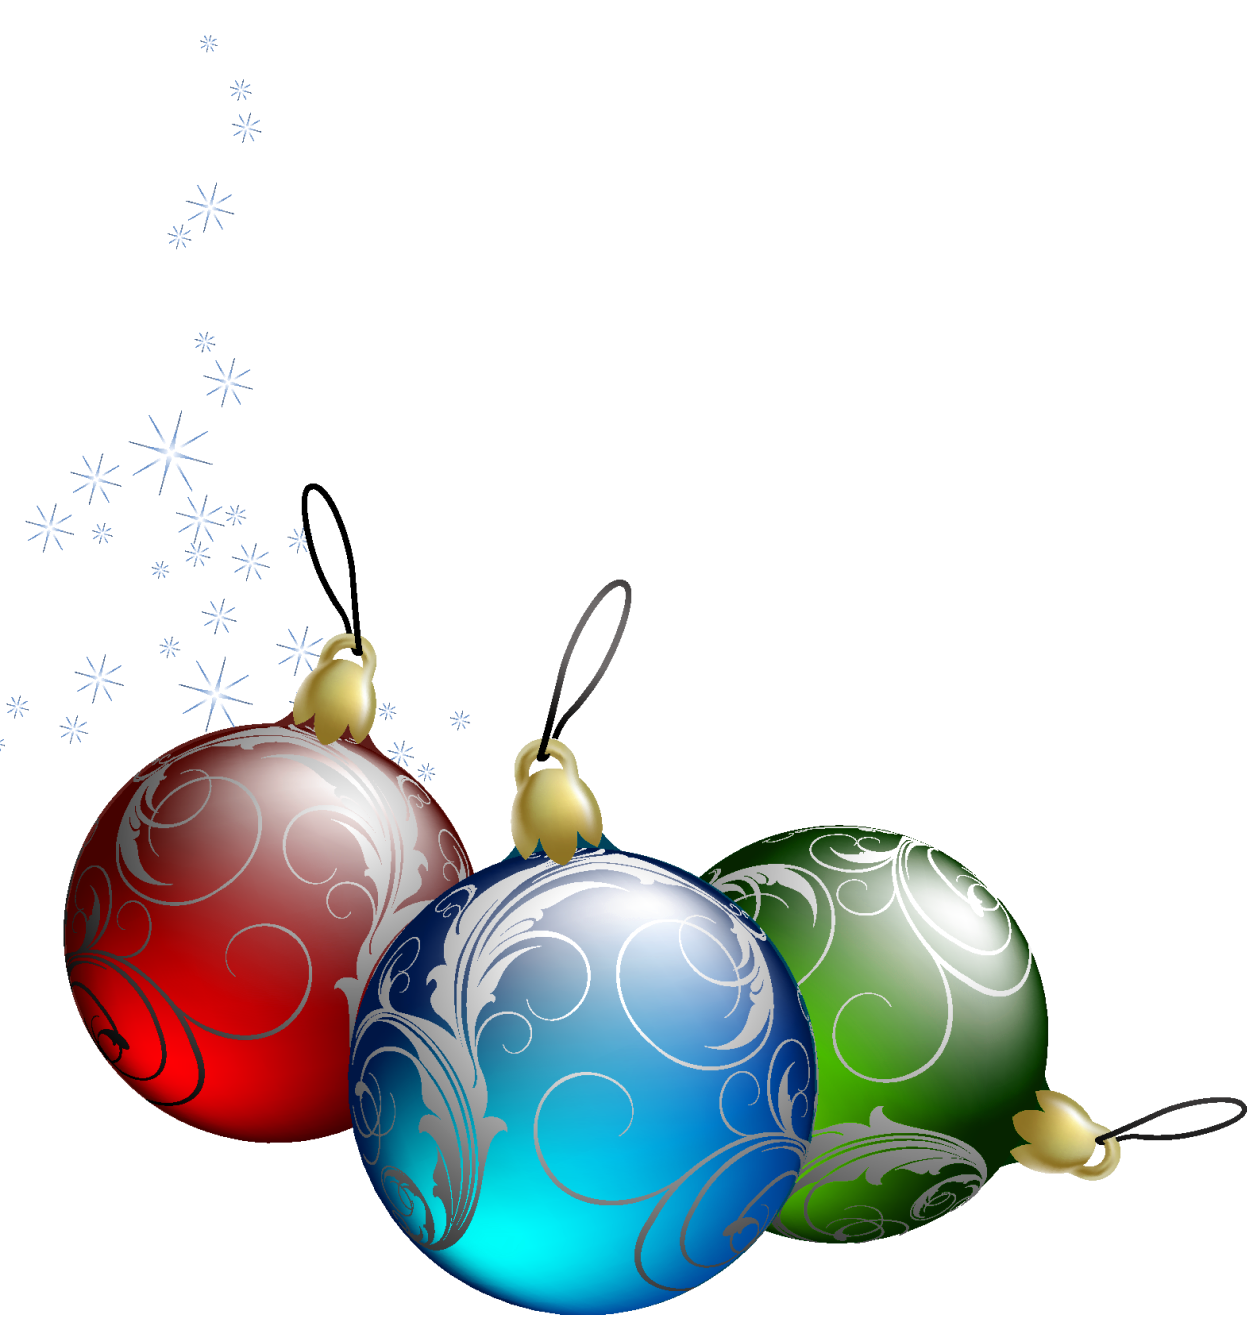 Tree Christmas Transparent Ornaments Clipart.